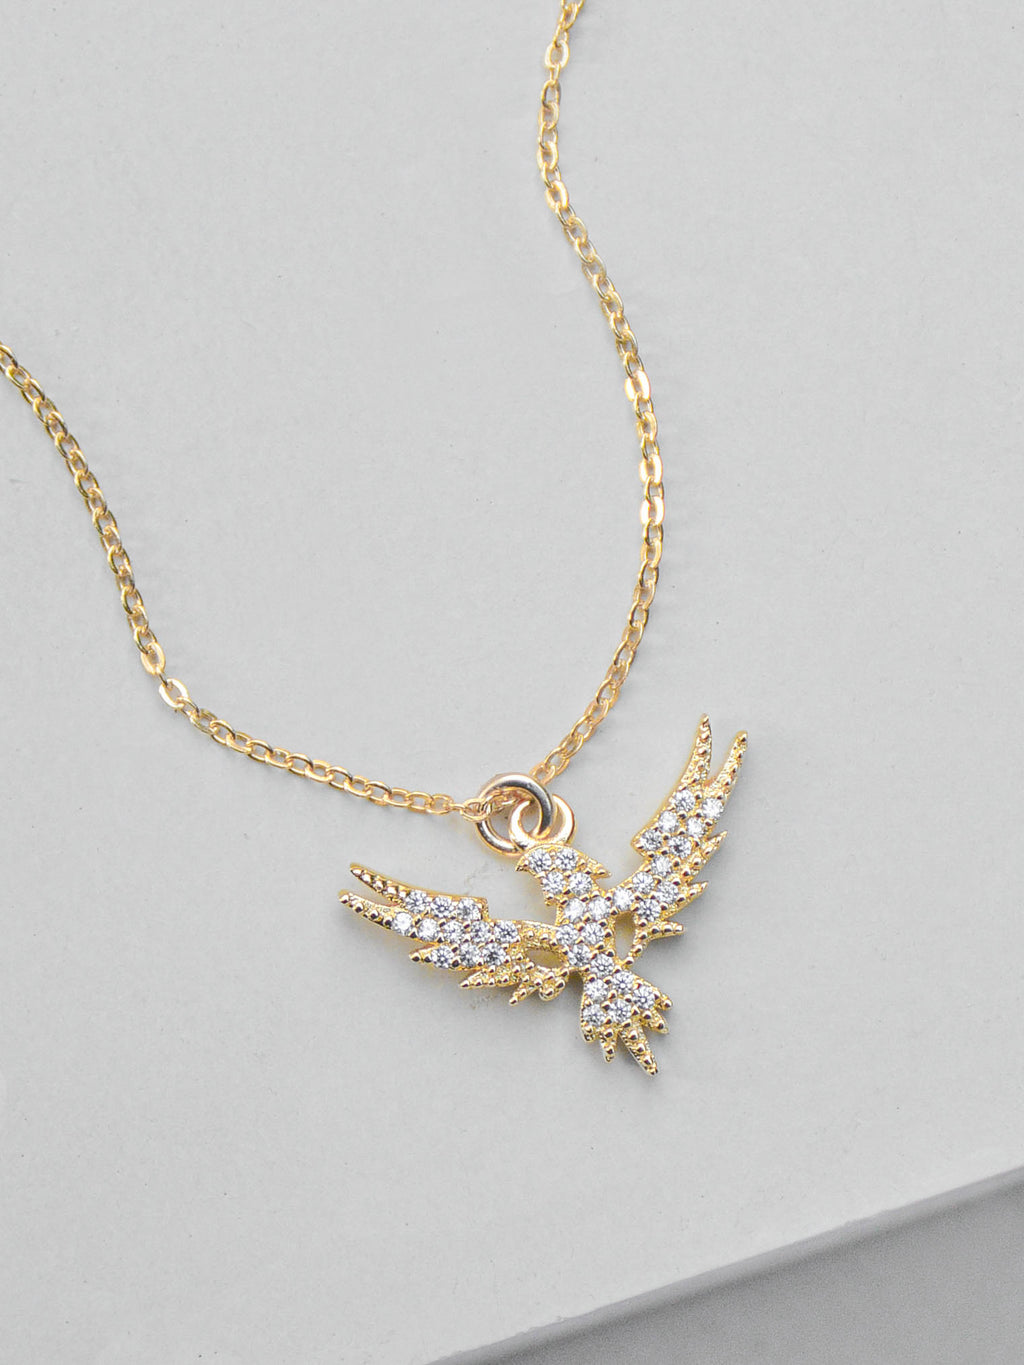 Gold Phoenix Charm Necklace by The Faint Hearted Jewelry